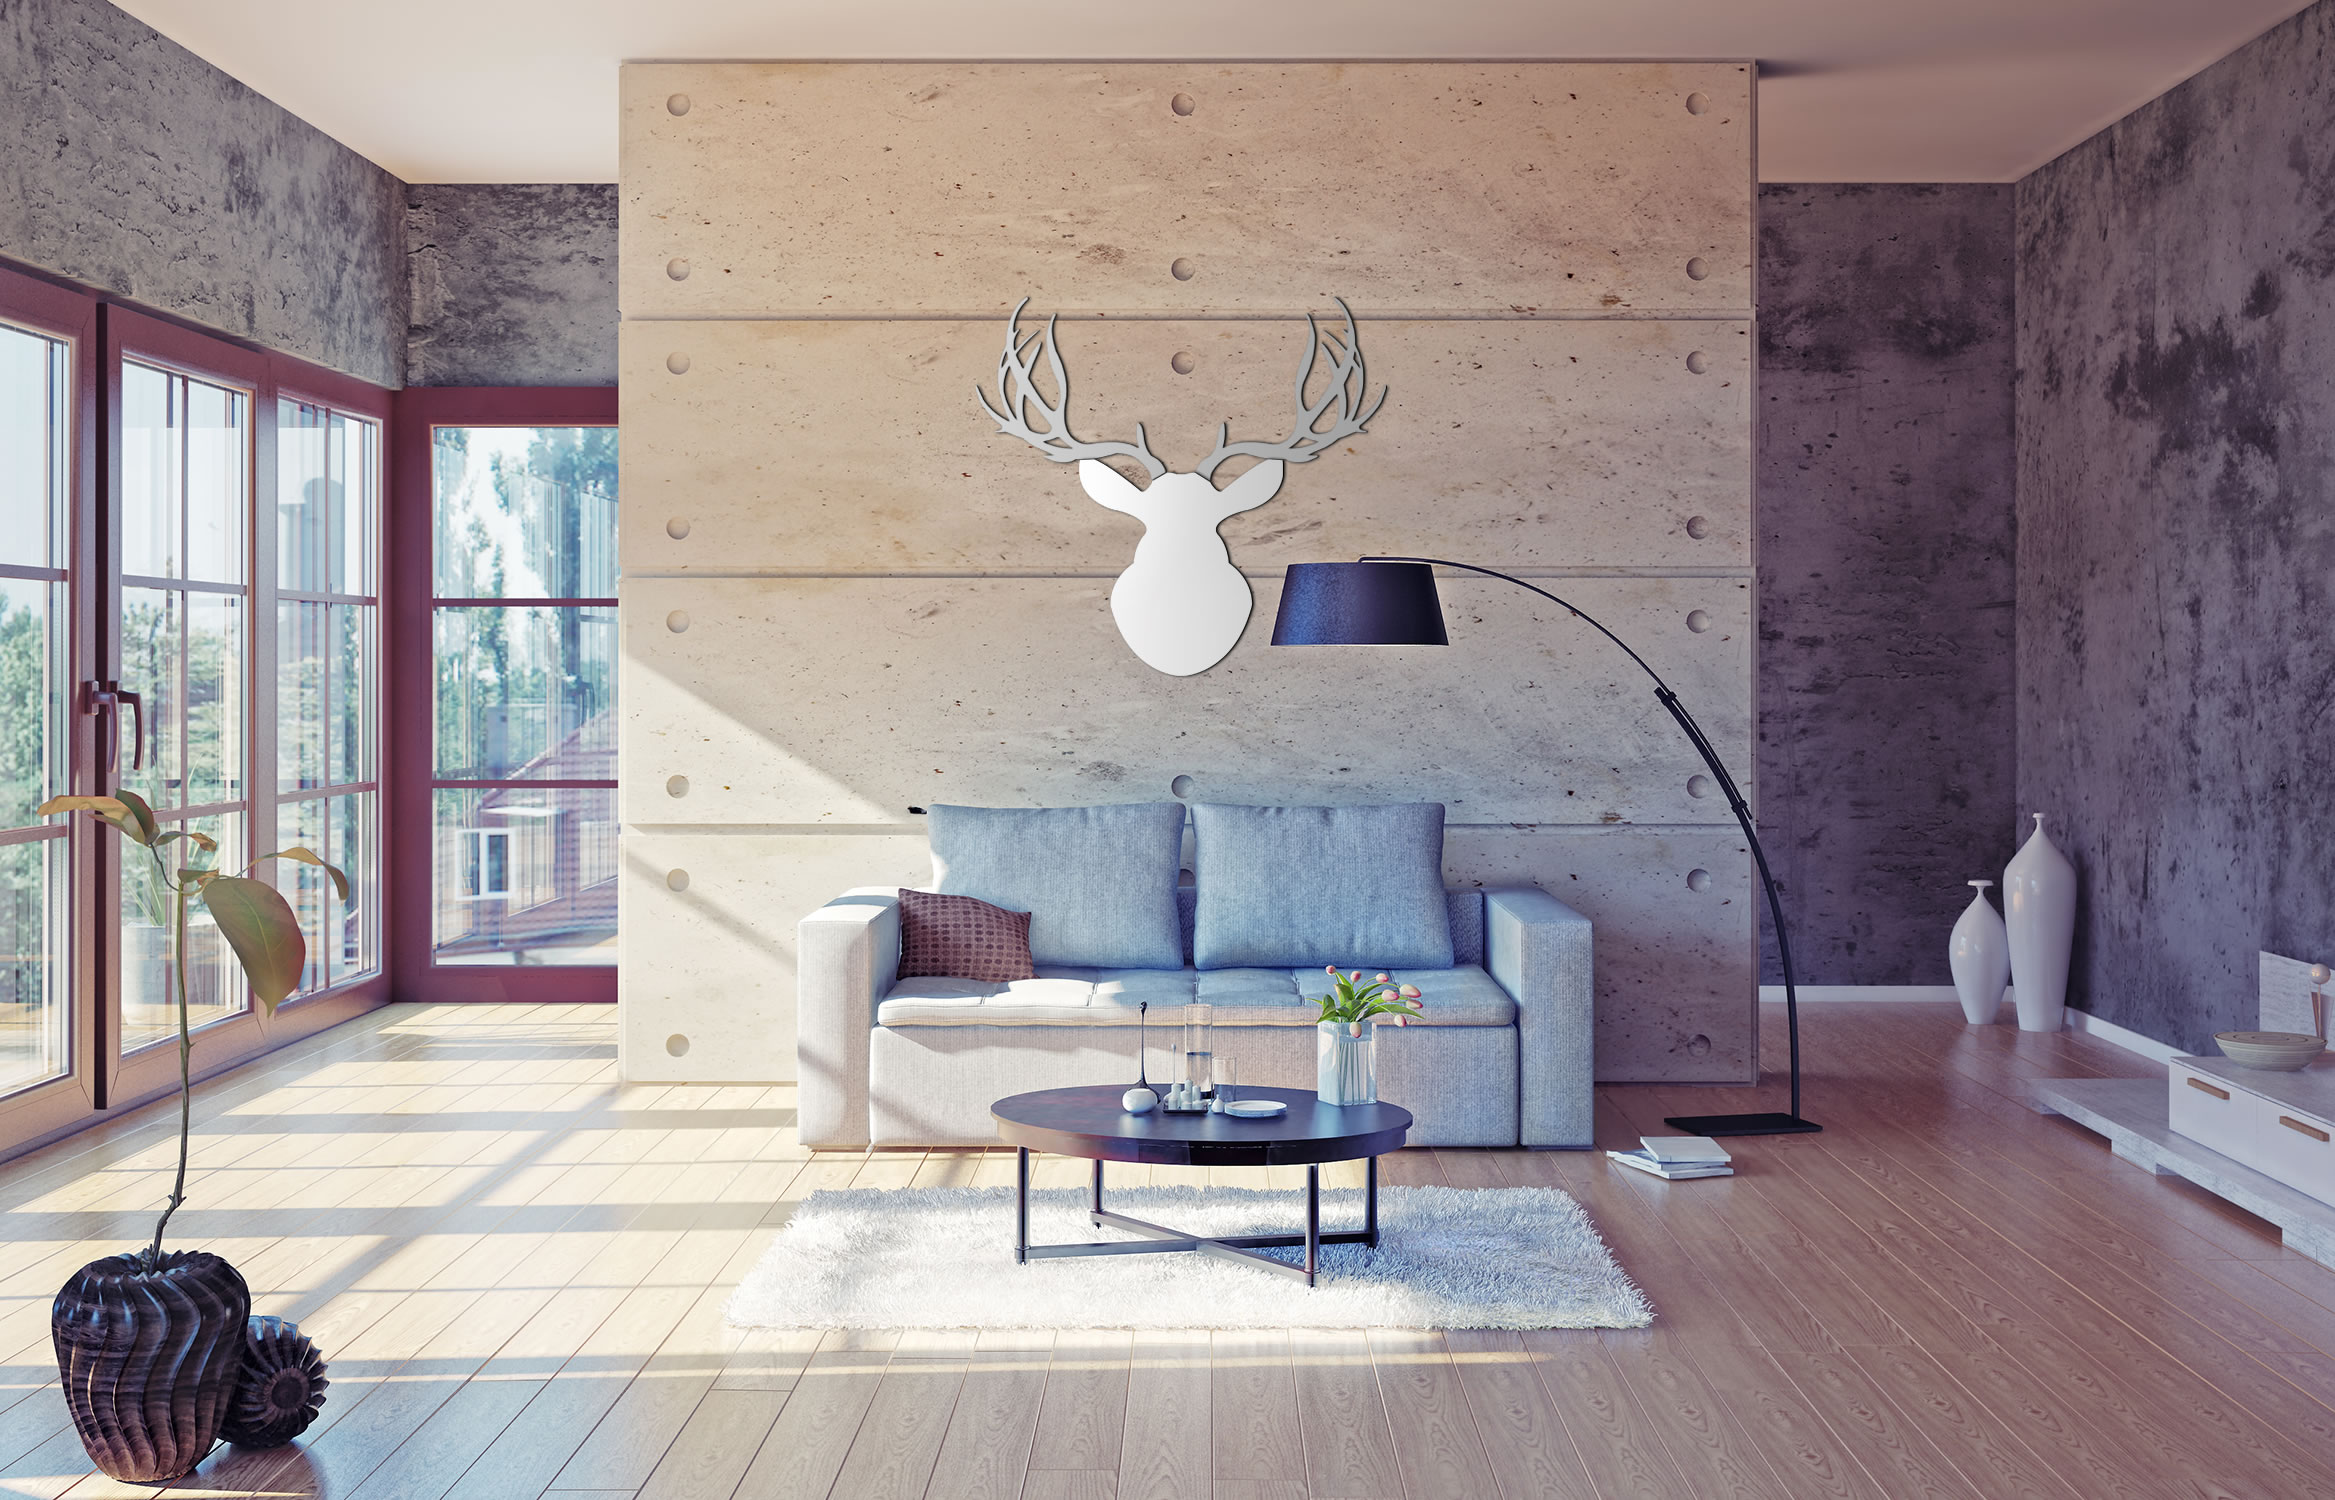 REGAL BUCK - 36x36 in. White & Silver Deer Cut-Out - Lifestyle Image